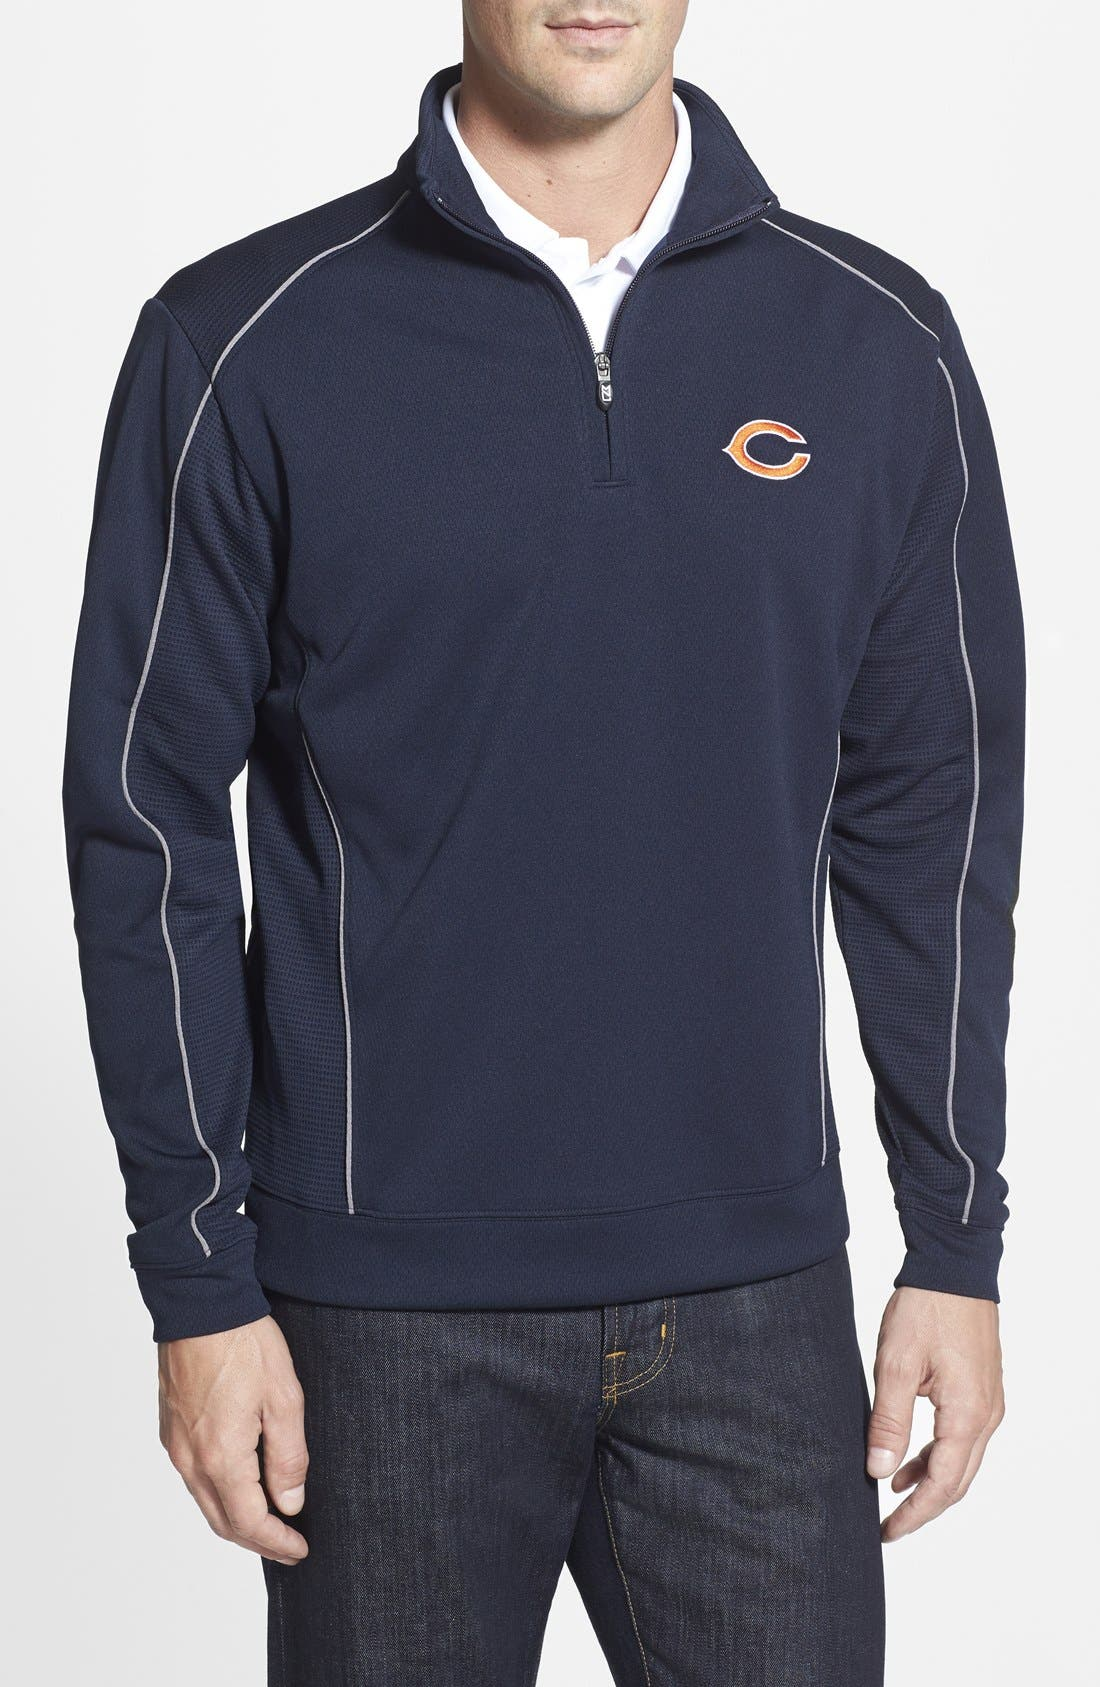 Chicago Bears - Edge DryTec Moisture Wicking Half Zip Pullover,                         Main,                         color, Navy Blue